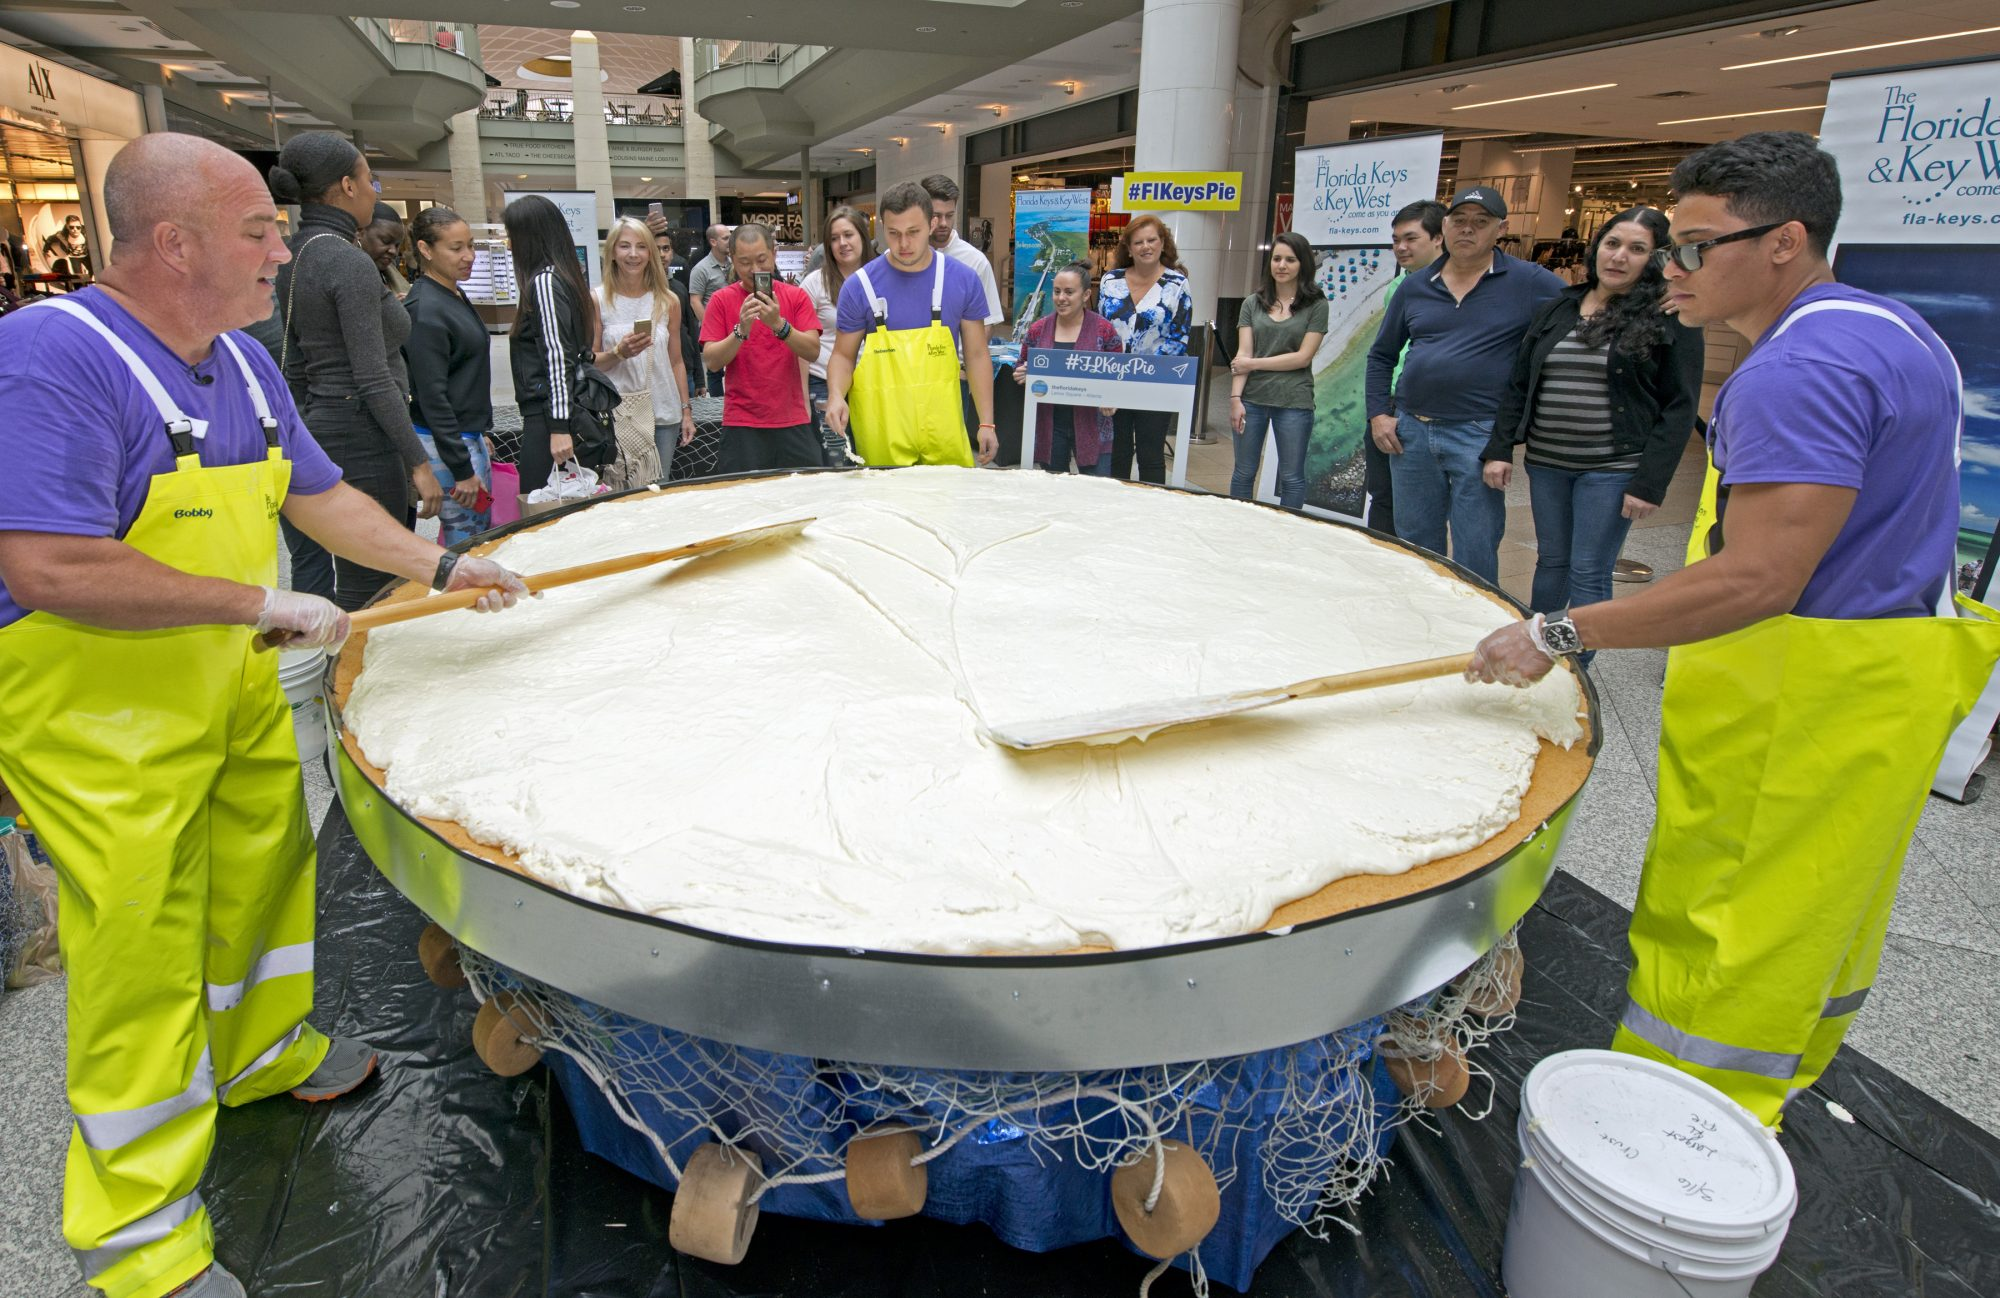 Southern Living World's Largest Key Lime Pie